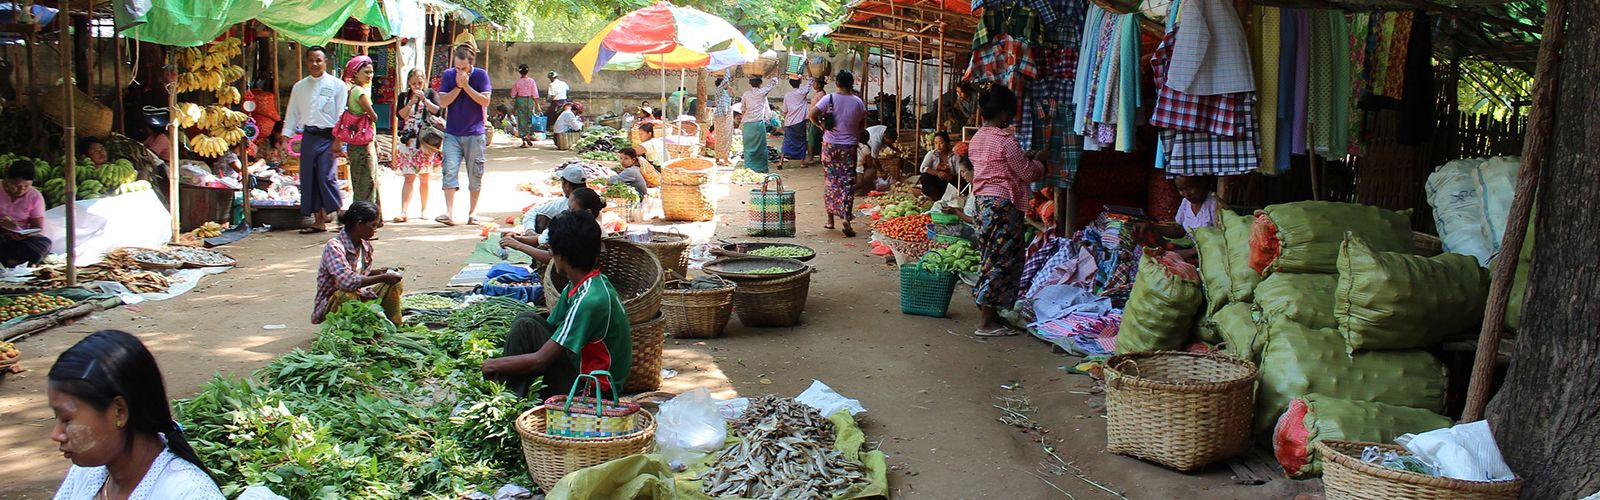 Myanmar Culture And Cuisine